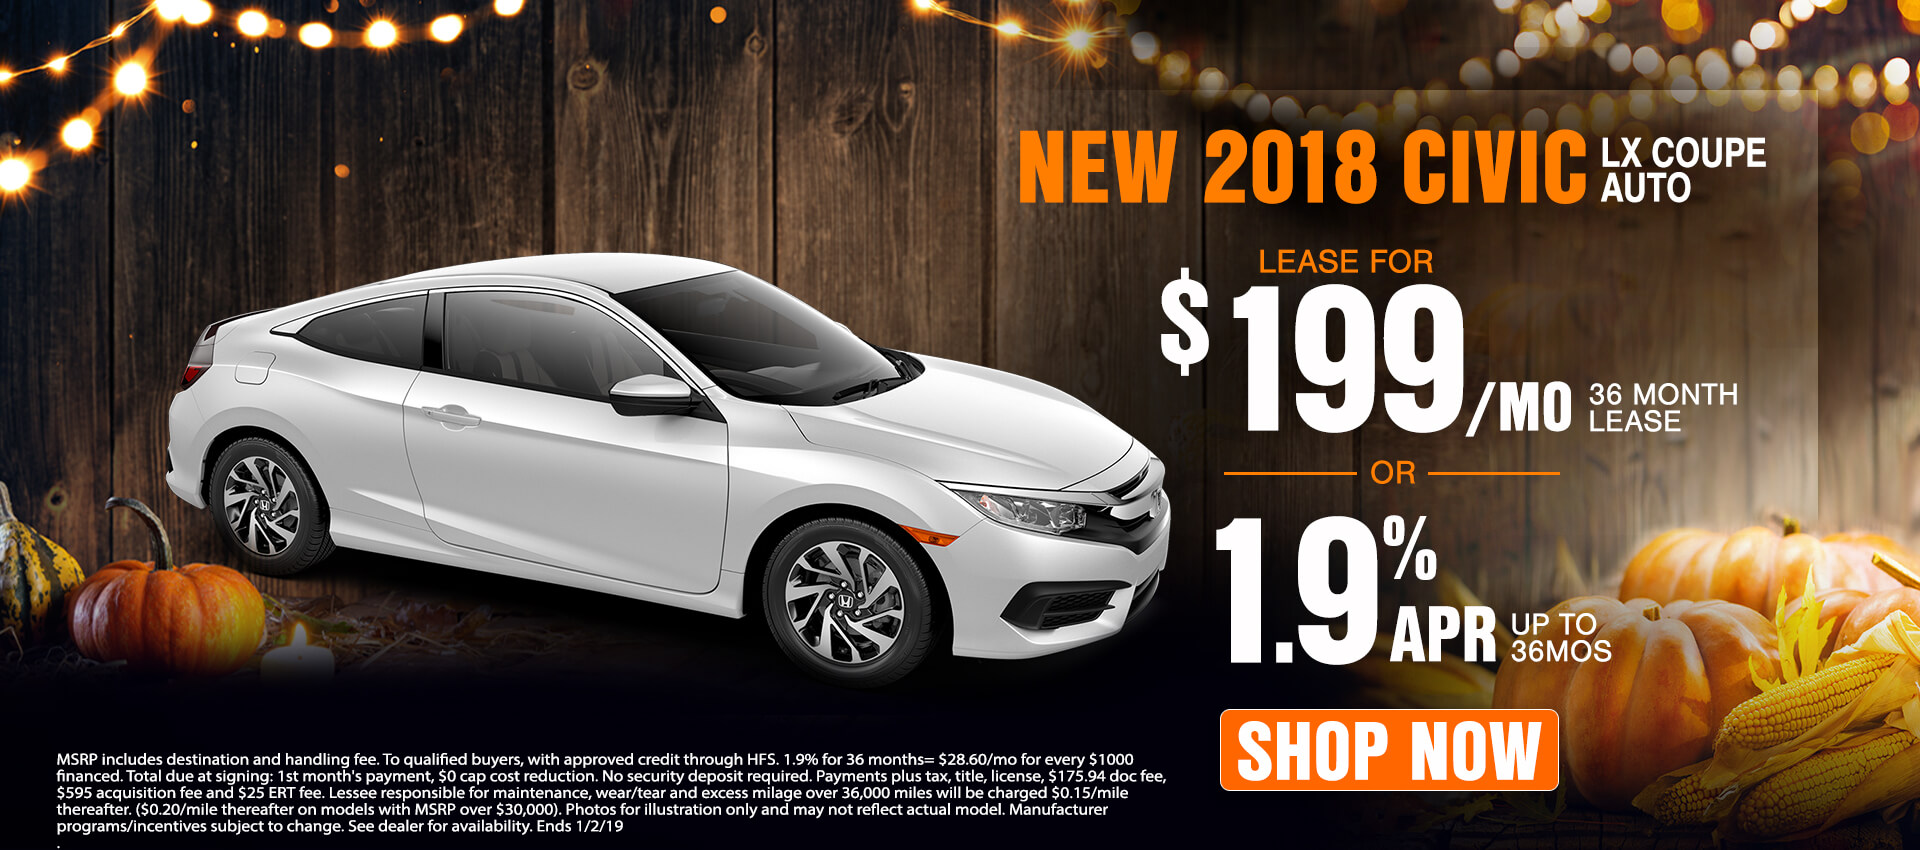 2018 Honda Civic Coupe $199 Lease